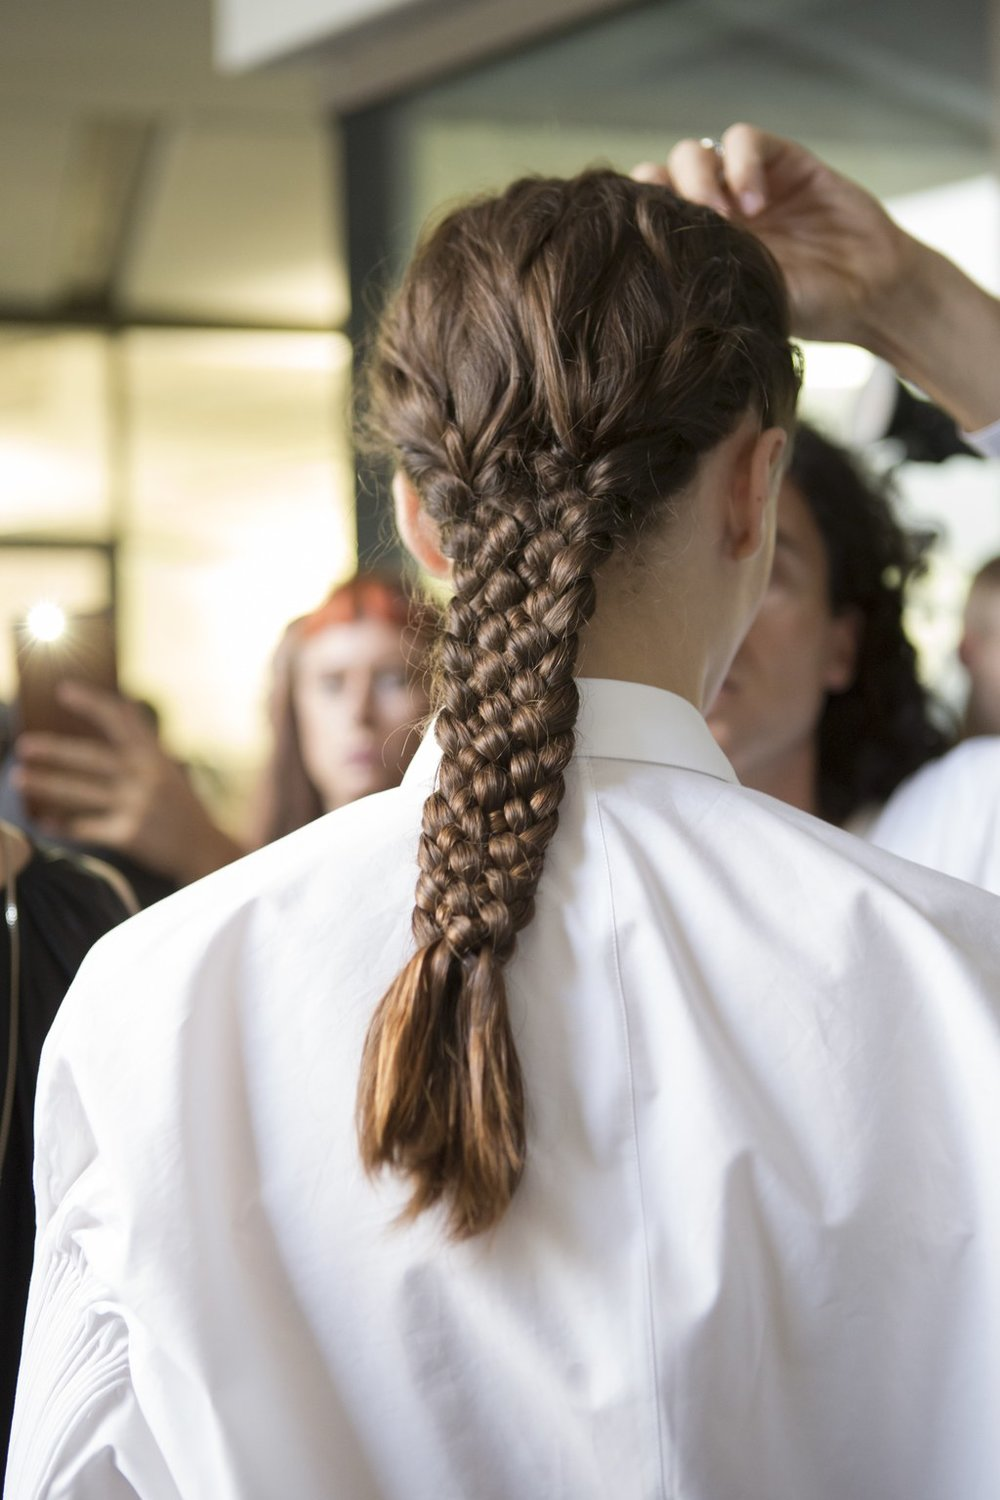 PHOTO: MATTEO SCARPELLINI; HAIR BY EUGENE SOULEIMAN  The Medieval Braids at Jil Sander